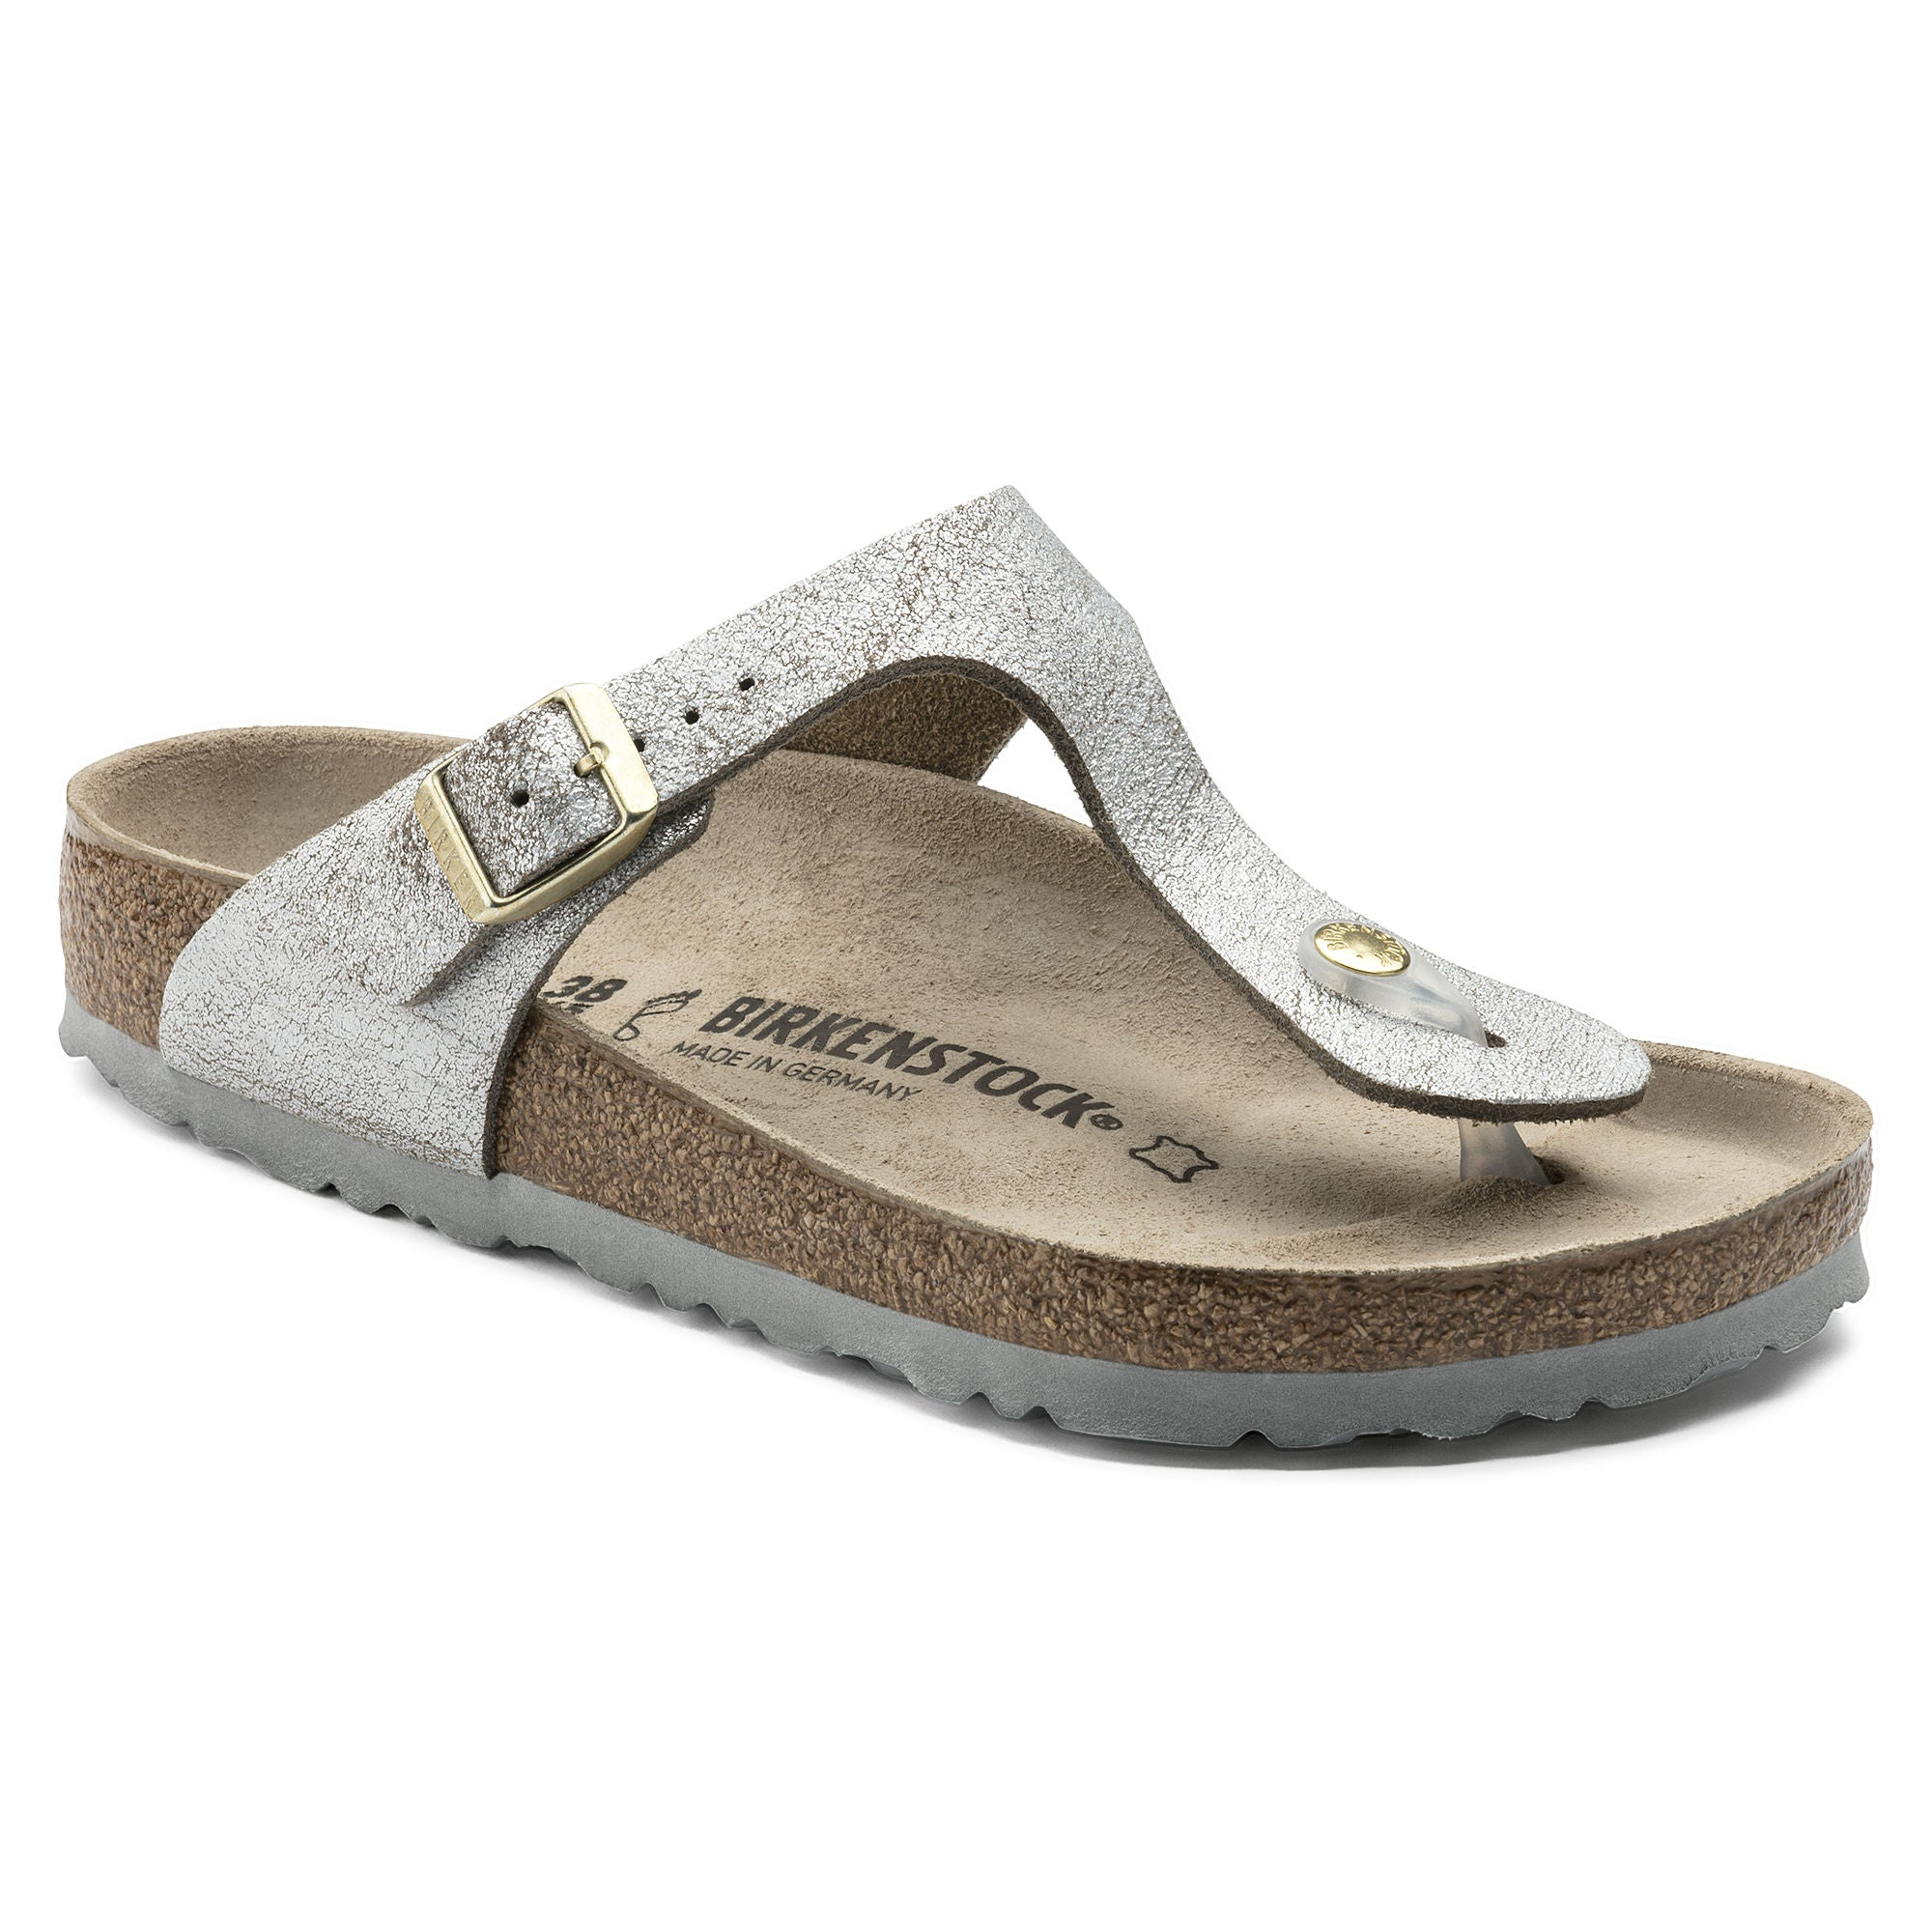 Birkenstock Gizeh Leather Sandal for Ladies in Silver Blue